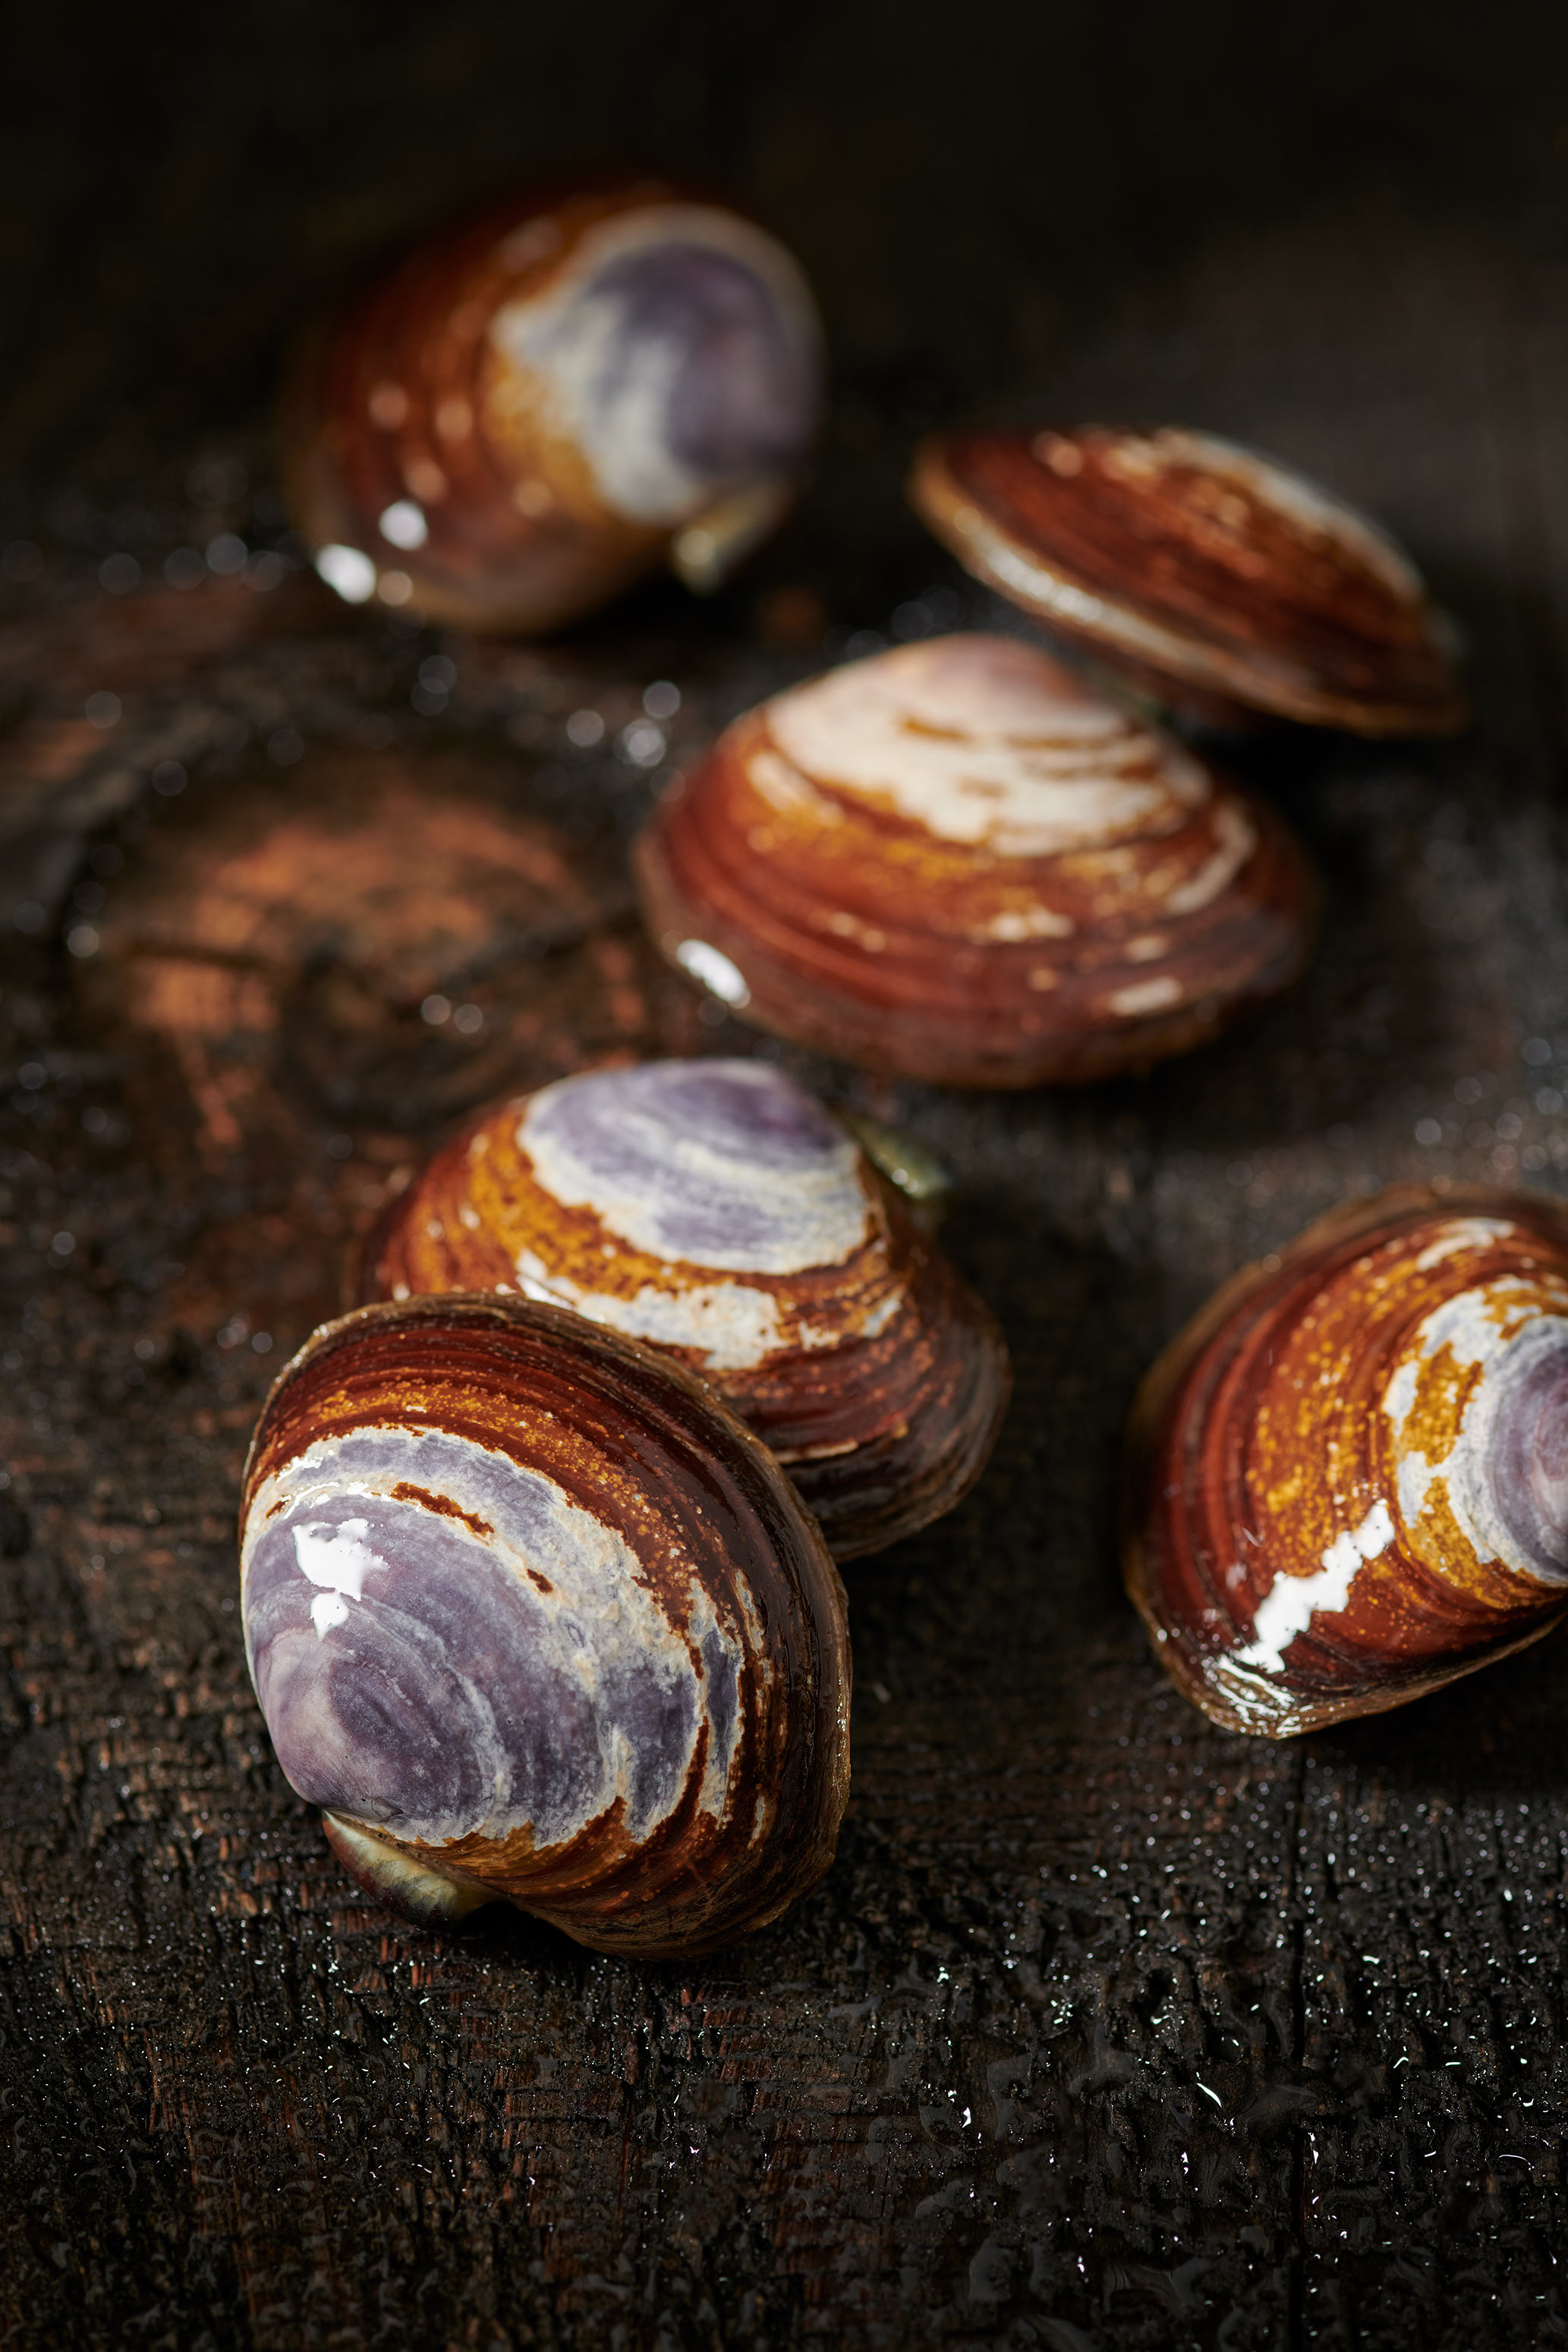 Clams Still Life | Steve Hansen food photography Seattle